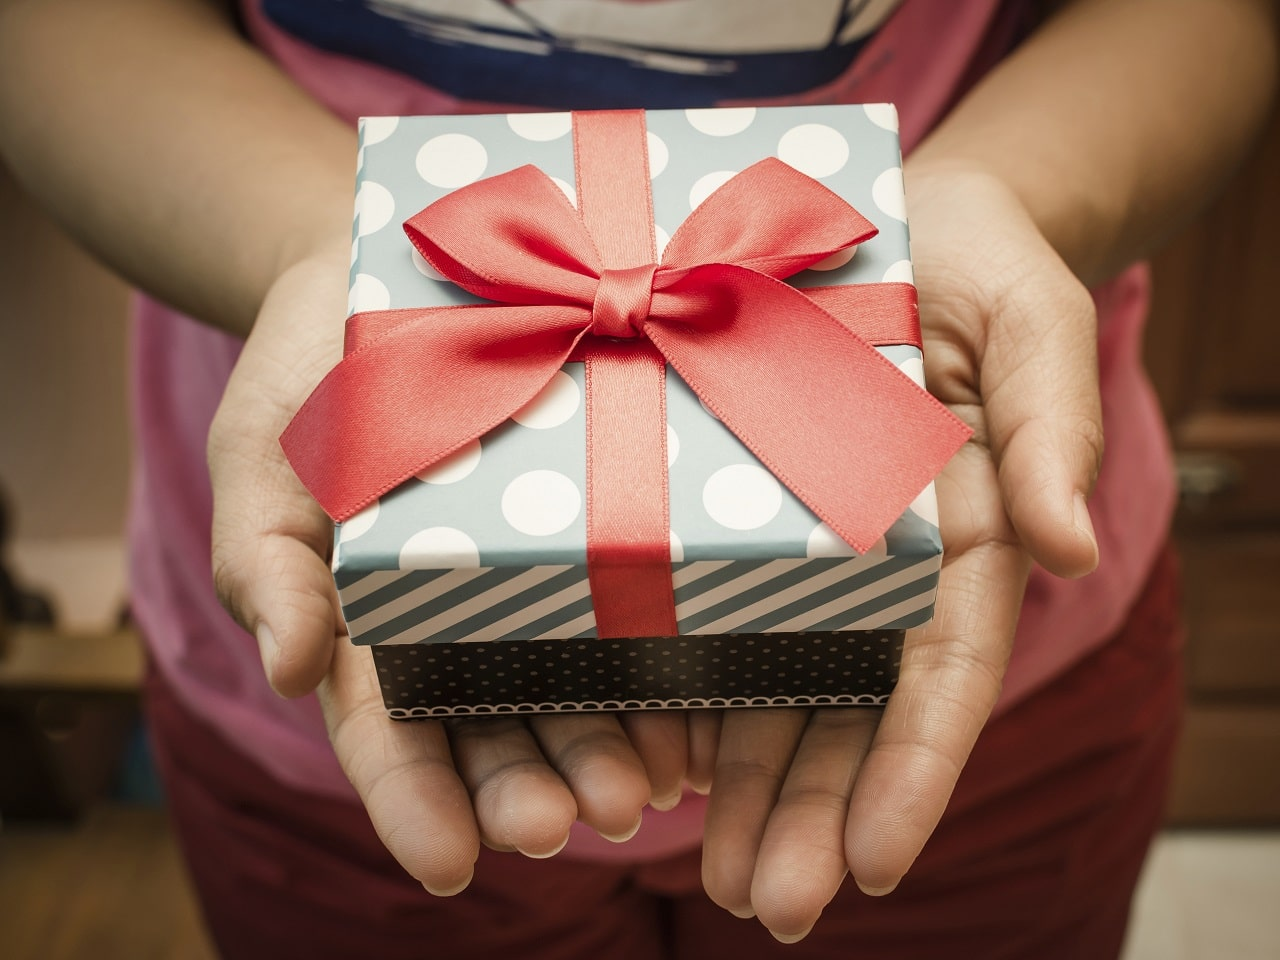 Woman holding a gift box in a gesture of giving